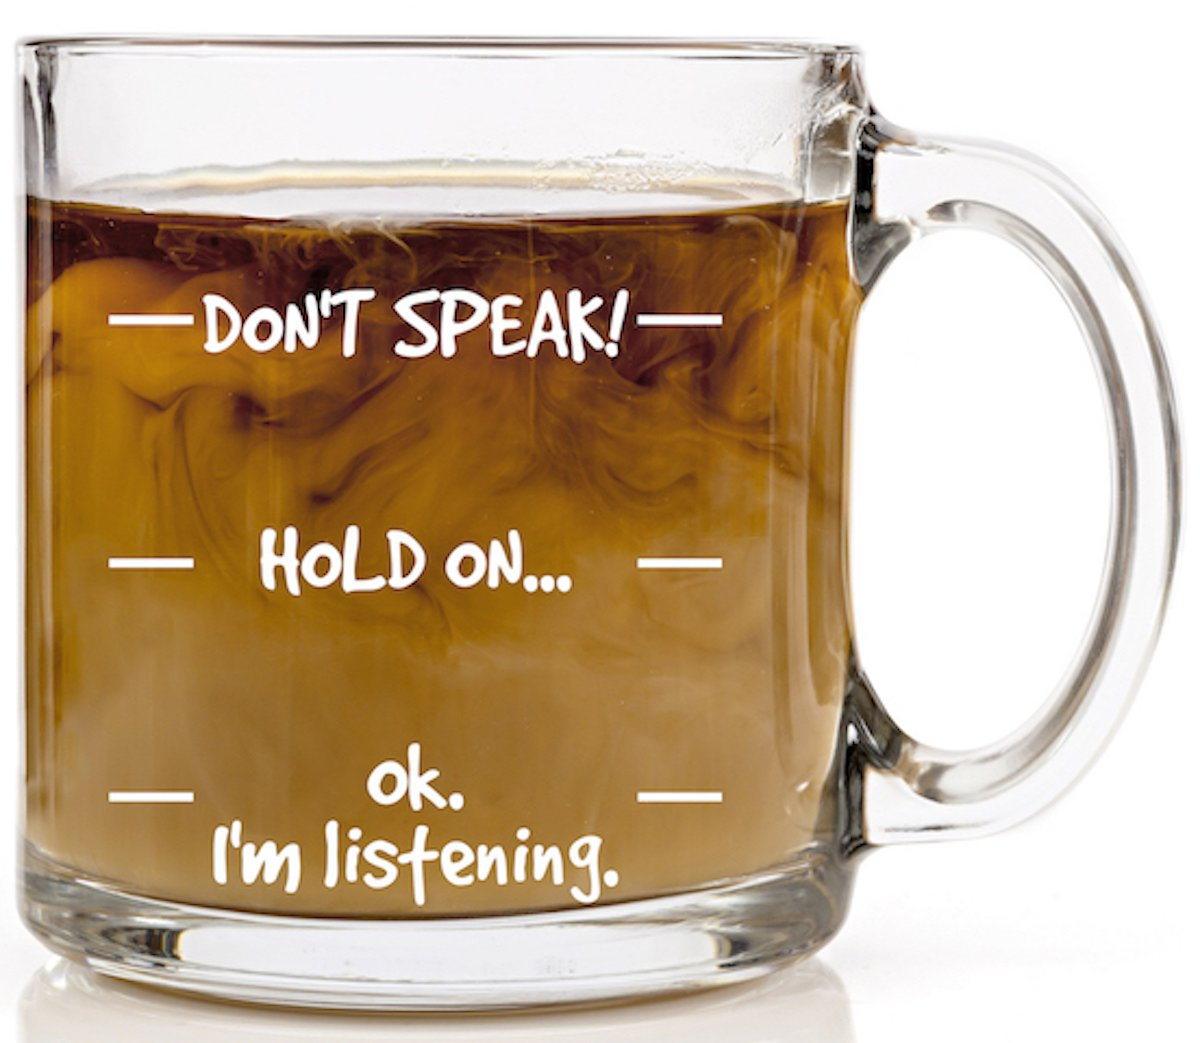 Don't Speak Funny Coffee Mug for Women or Men - 13 oz Glass Mugs - Cute Gifts for Mom, Dad, Sister, Brother, Husband, Wife or Best Friend for Birthday or Christmas - Travel Cup